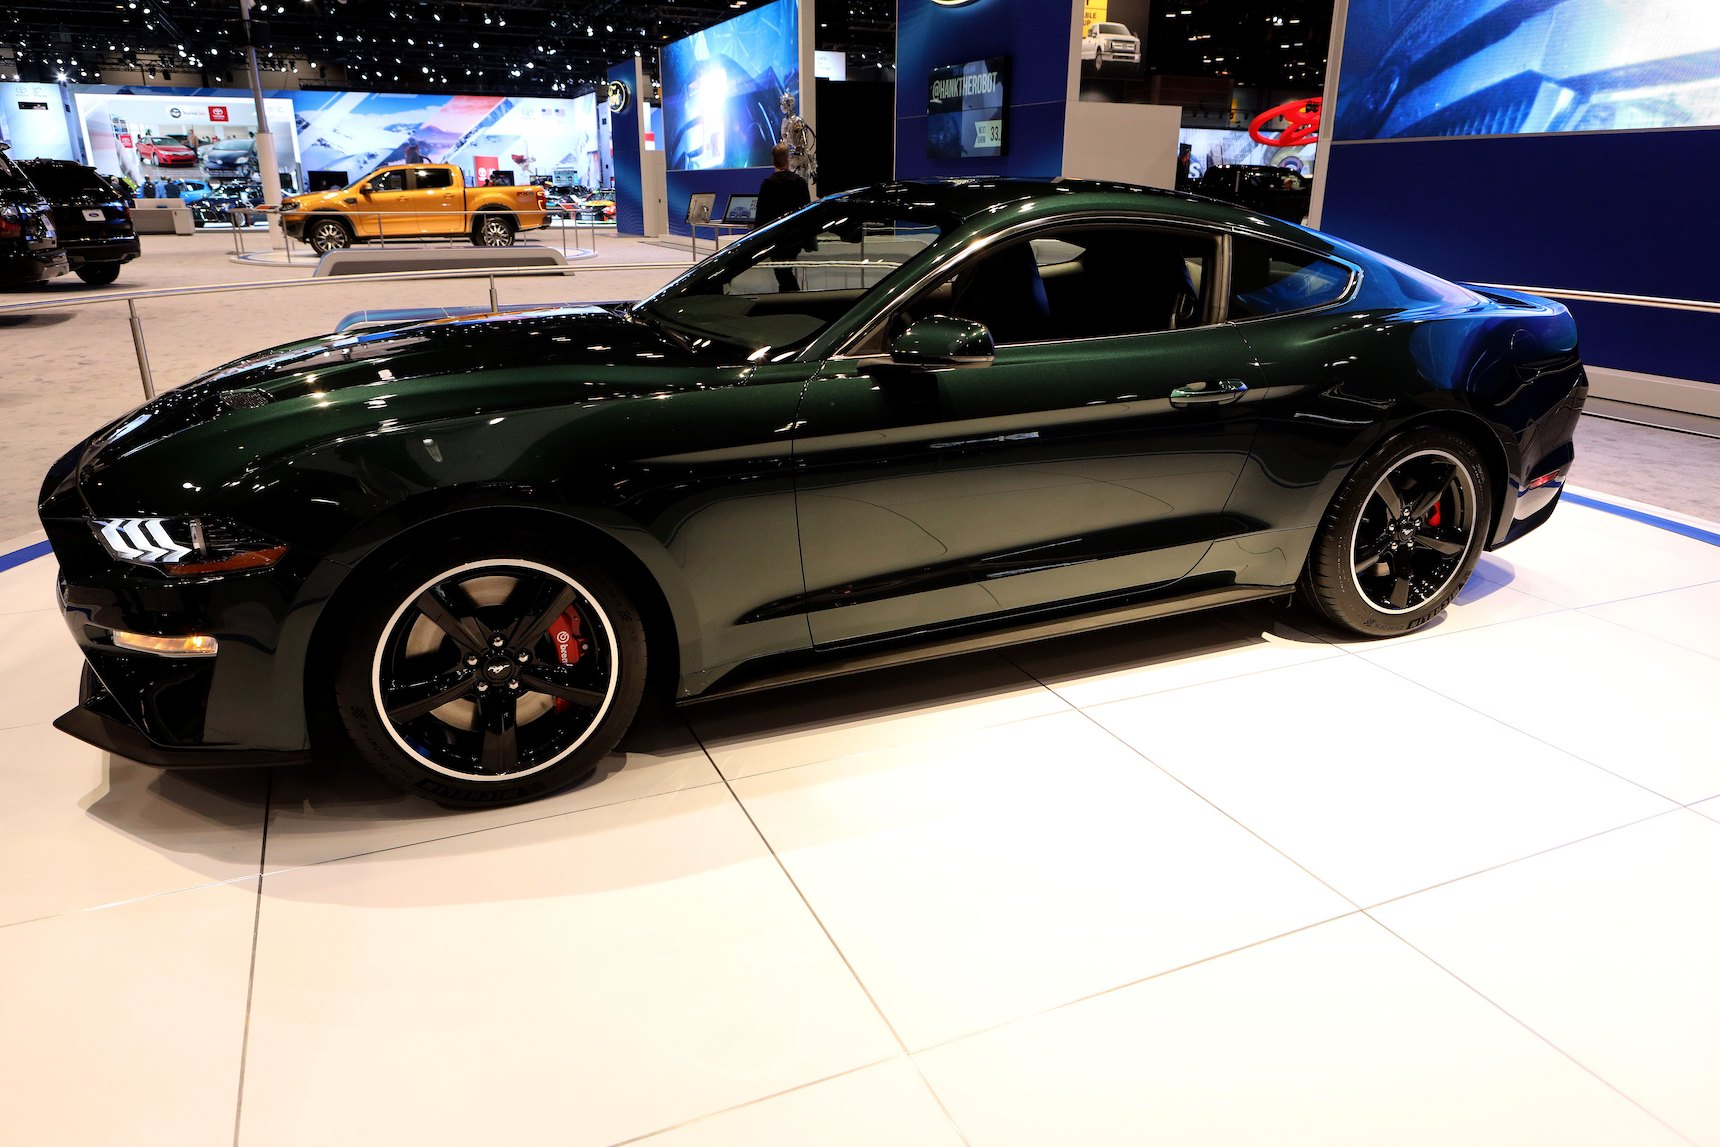 2020 Ford Mustang Bullitt Is Not Worth the Extra $8,000